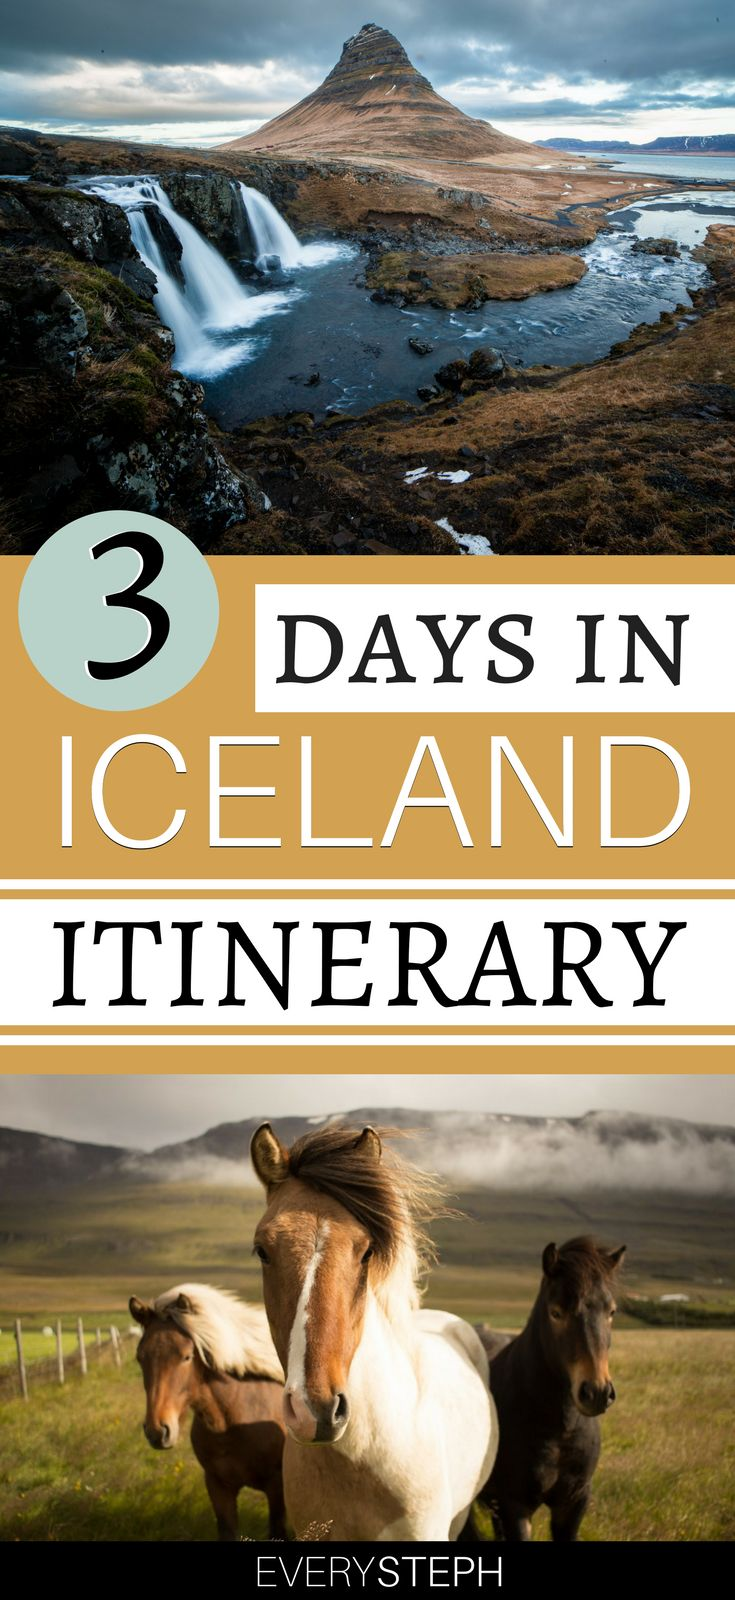 A trip to Iceland is a magical one, and luckily the country is way easier to reach nowadays! Check out this 3 days in Iceland itinerary that can be easily done with an Iceland layover: the Blue Lagoon, Icelandic horses, and the most beautiful landscapes await you! | 3 days in Iceland summer | 3 days in Iceland winter | 3 days in Iceland northern lights | where to go in Iceland #iceland #itinerary - via @everysteph